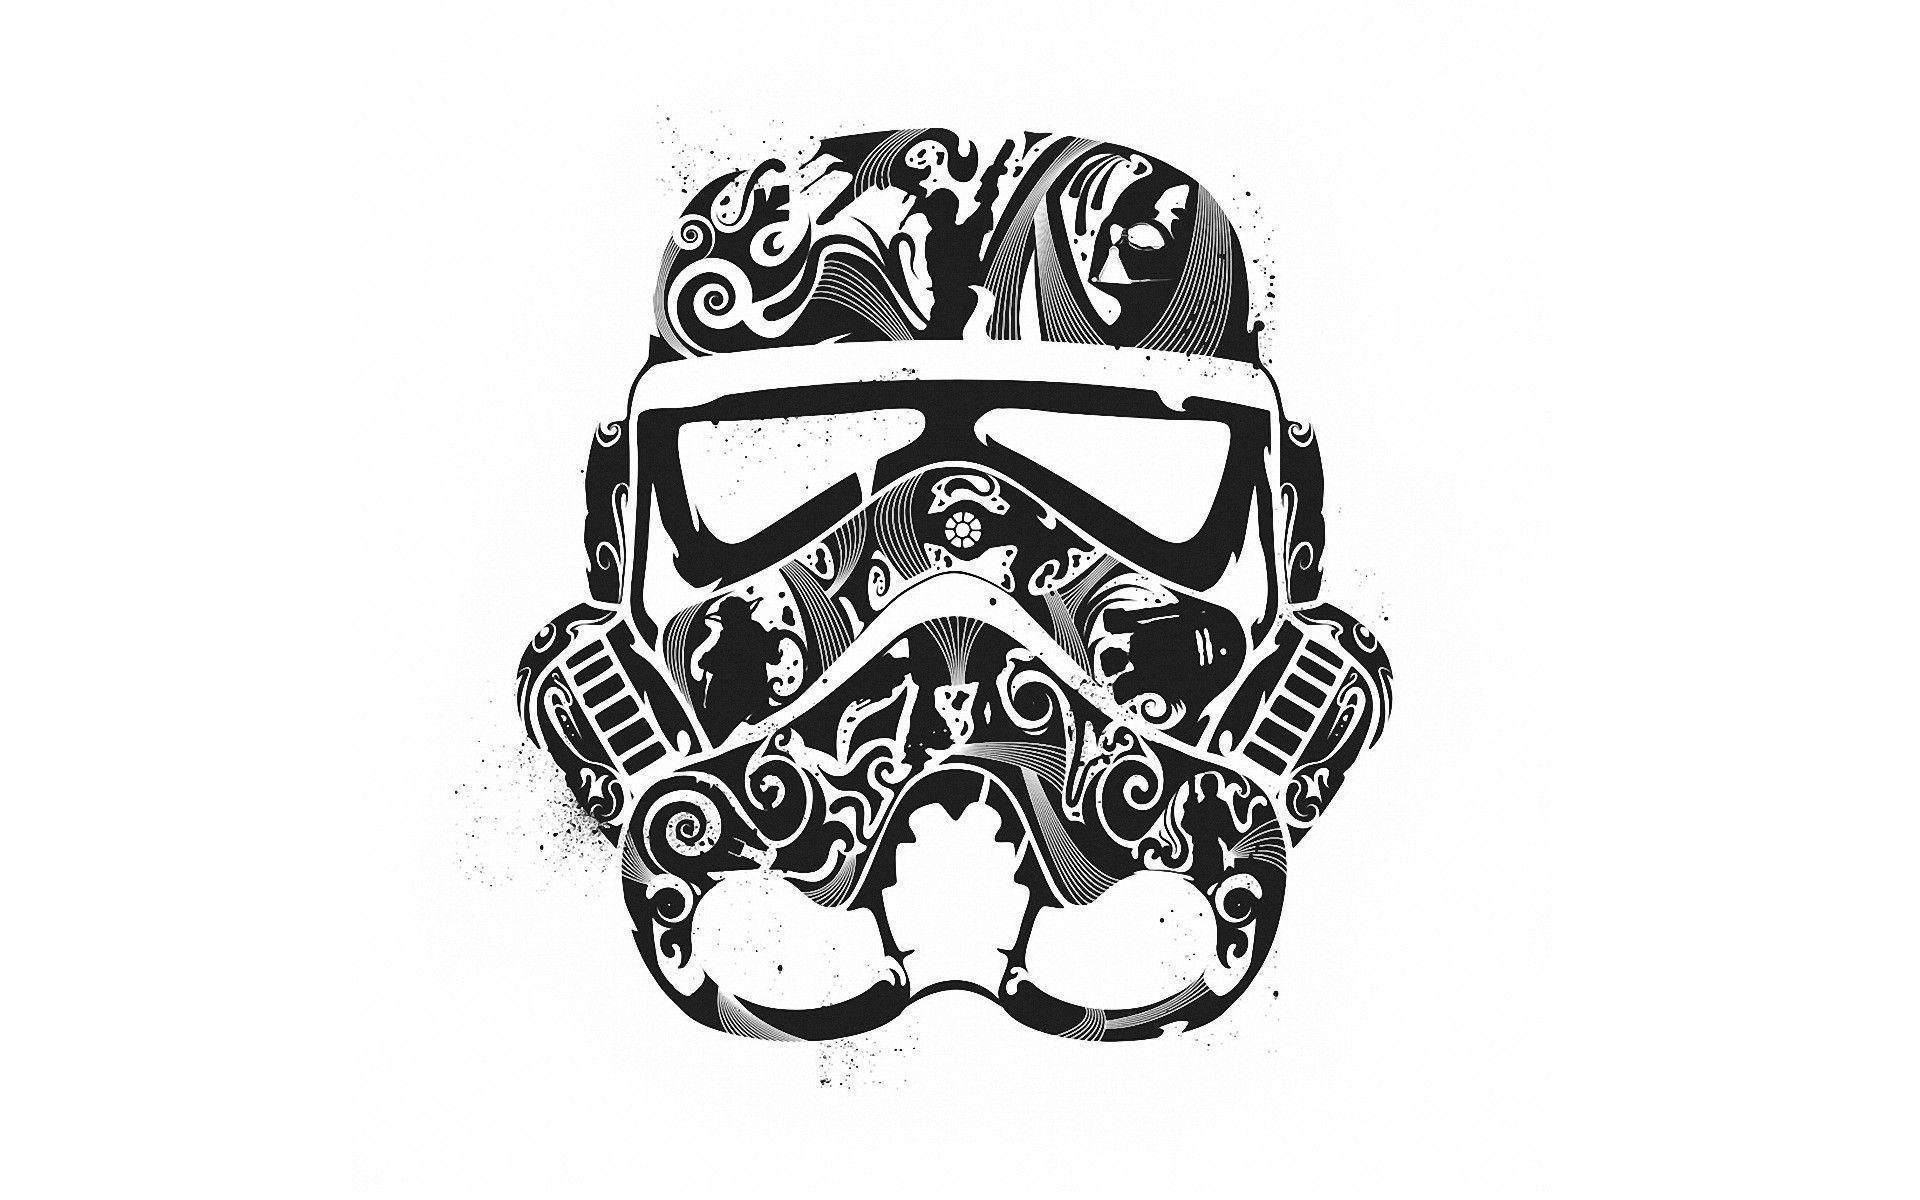 Star Wars stormtroopers boss wallpaper | 2560x1600 | 65494 ...